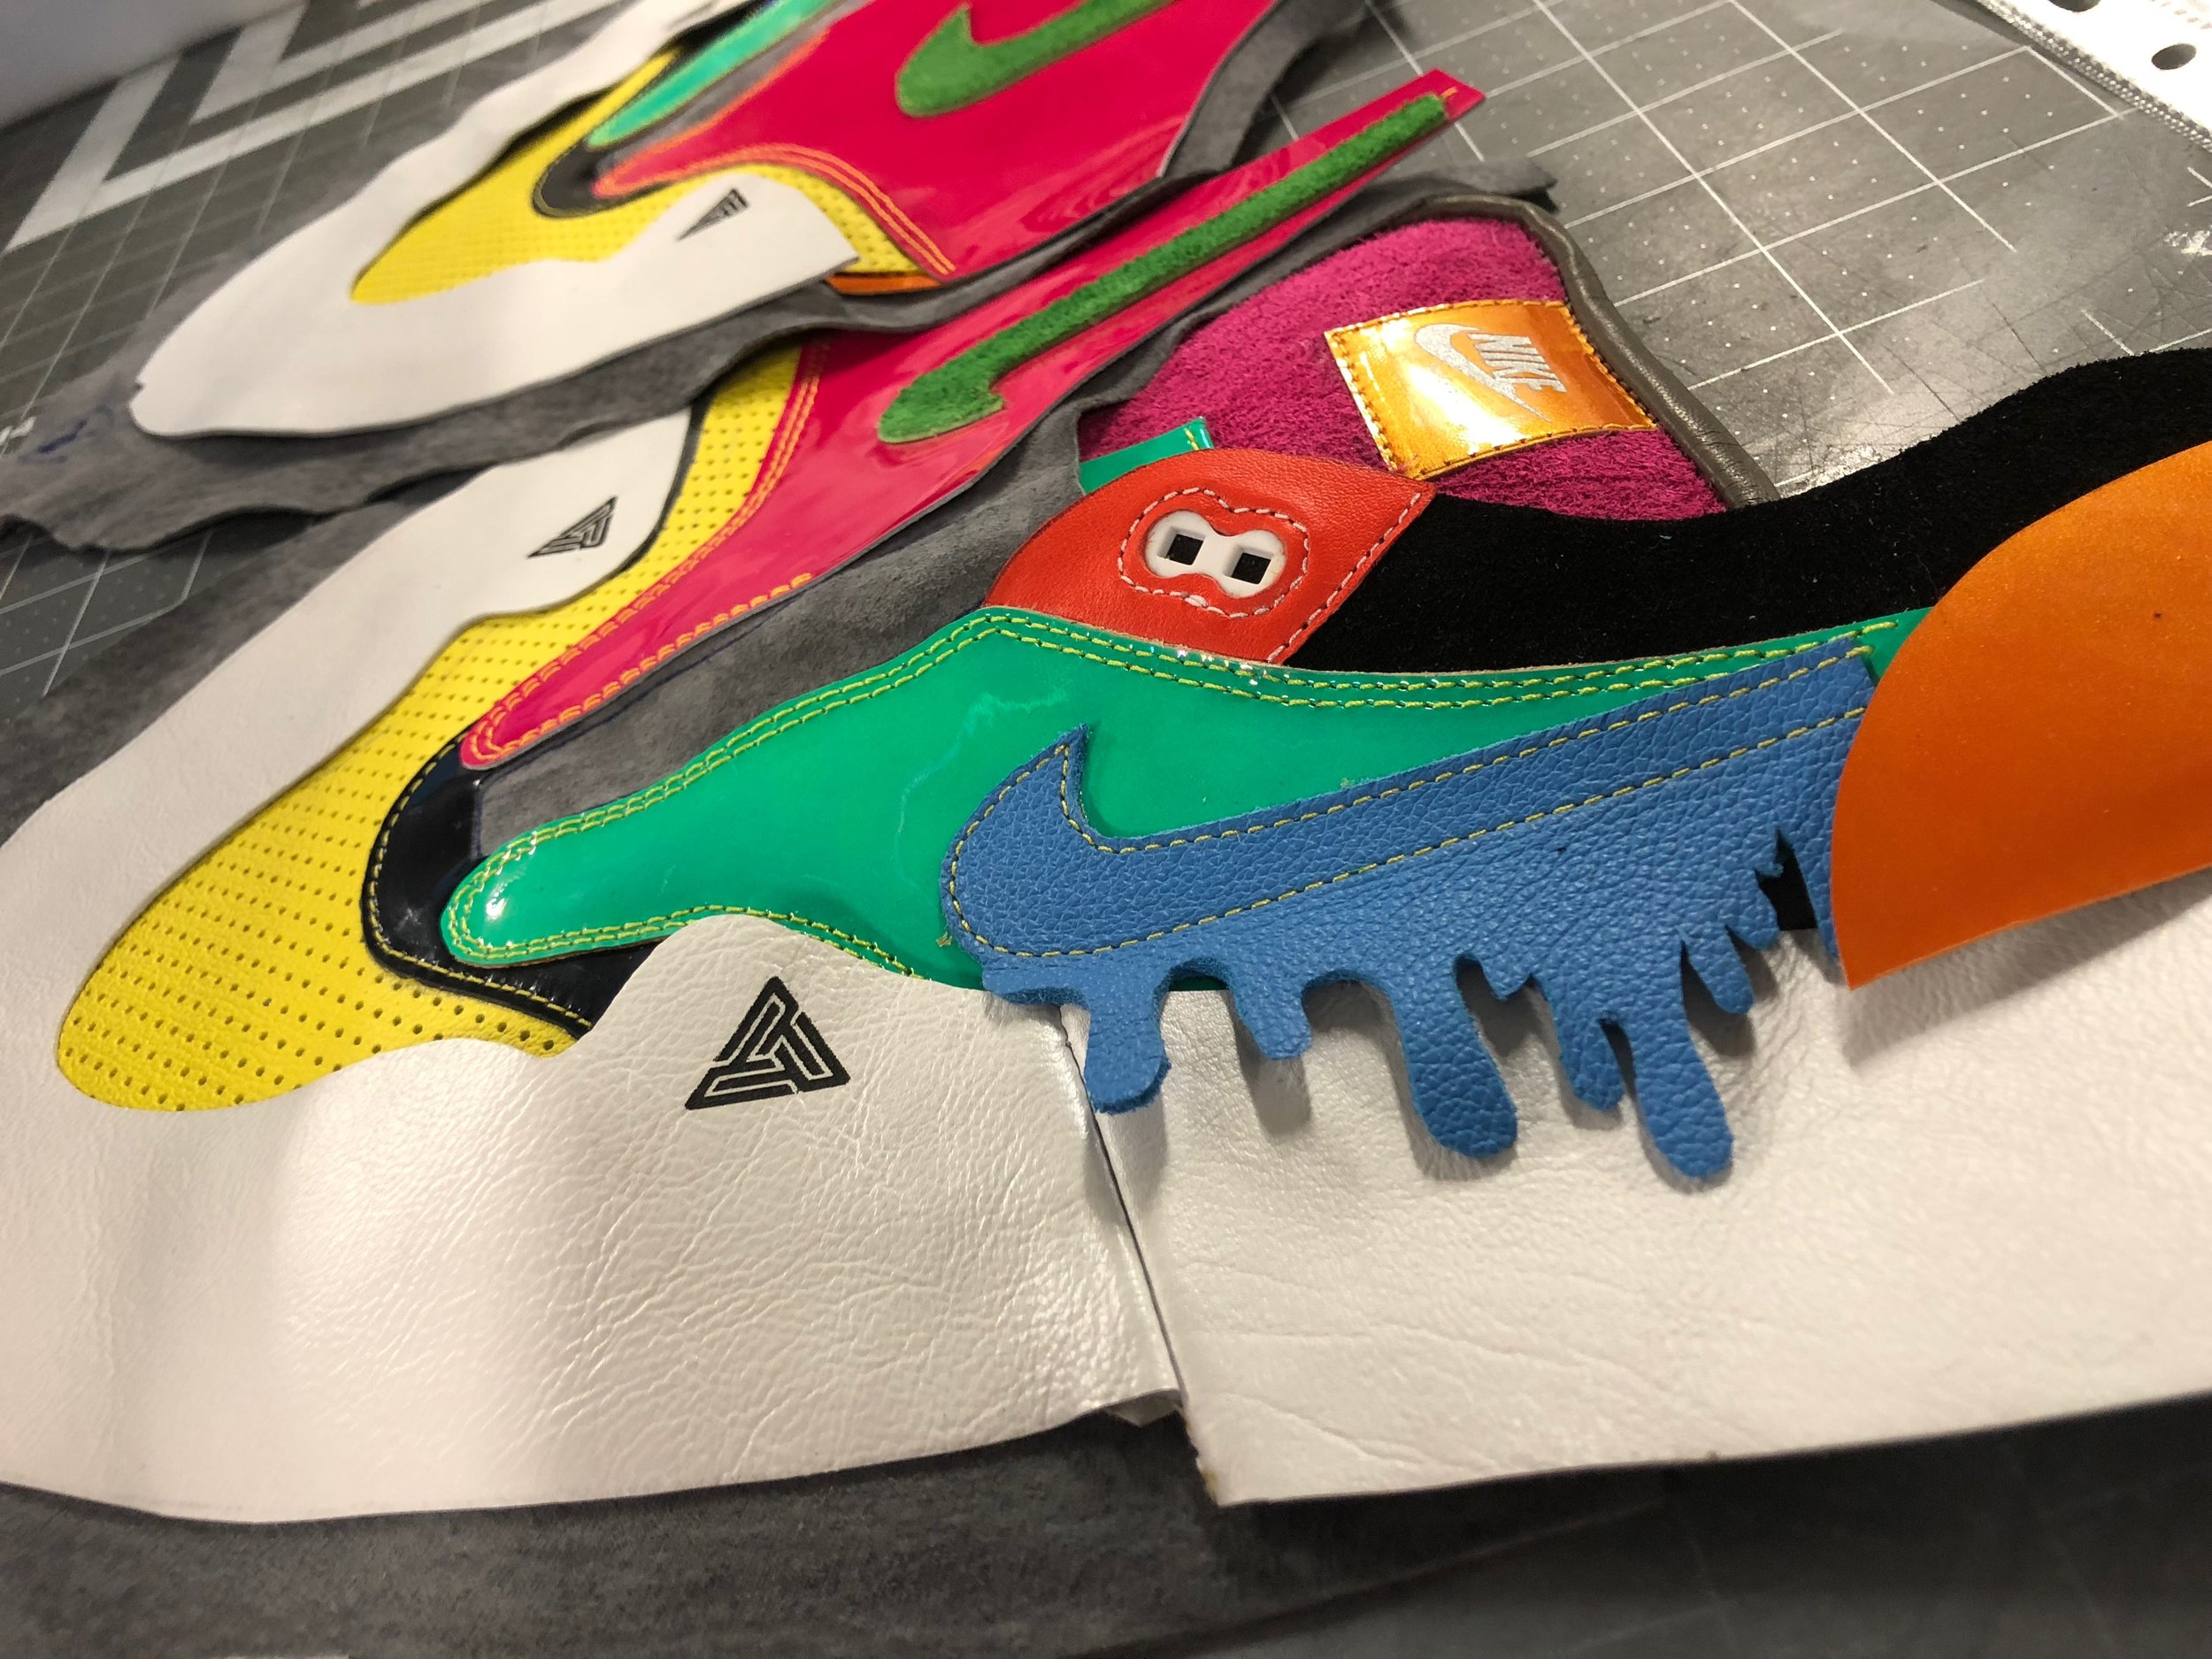 Nike iD Sportswear Bespoke Customizable Shoe Textile Blog